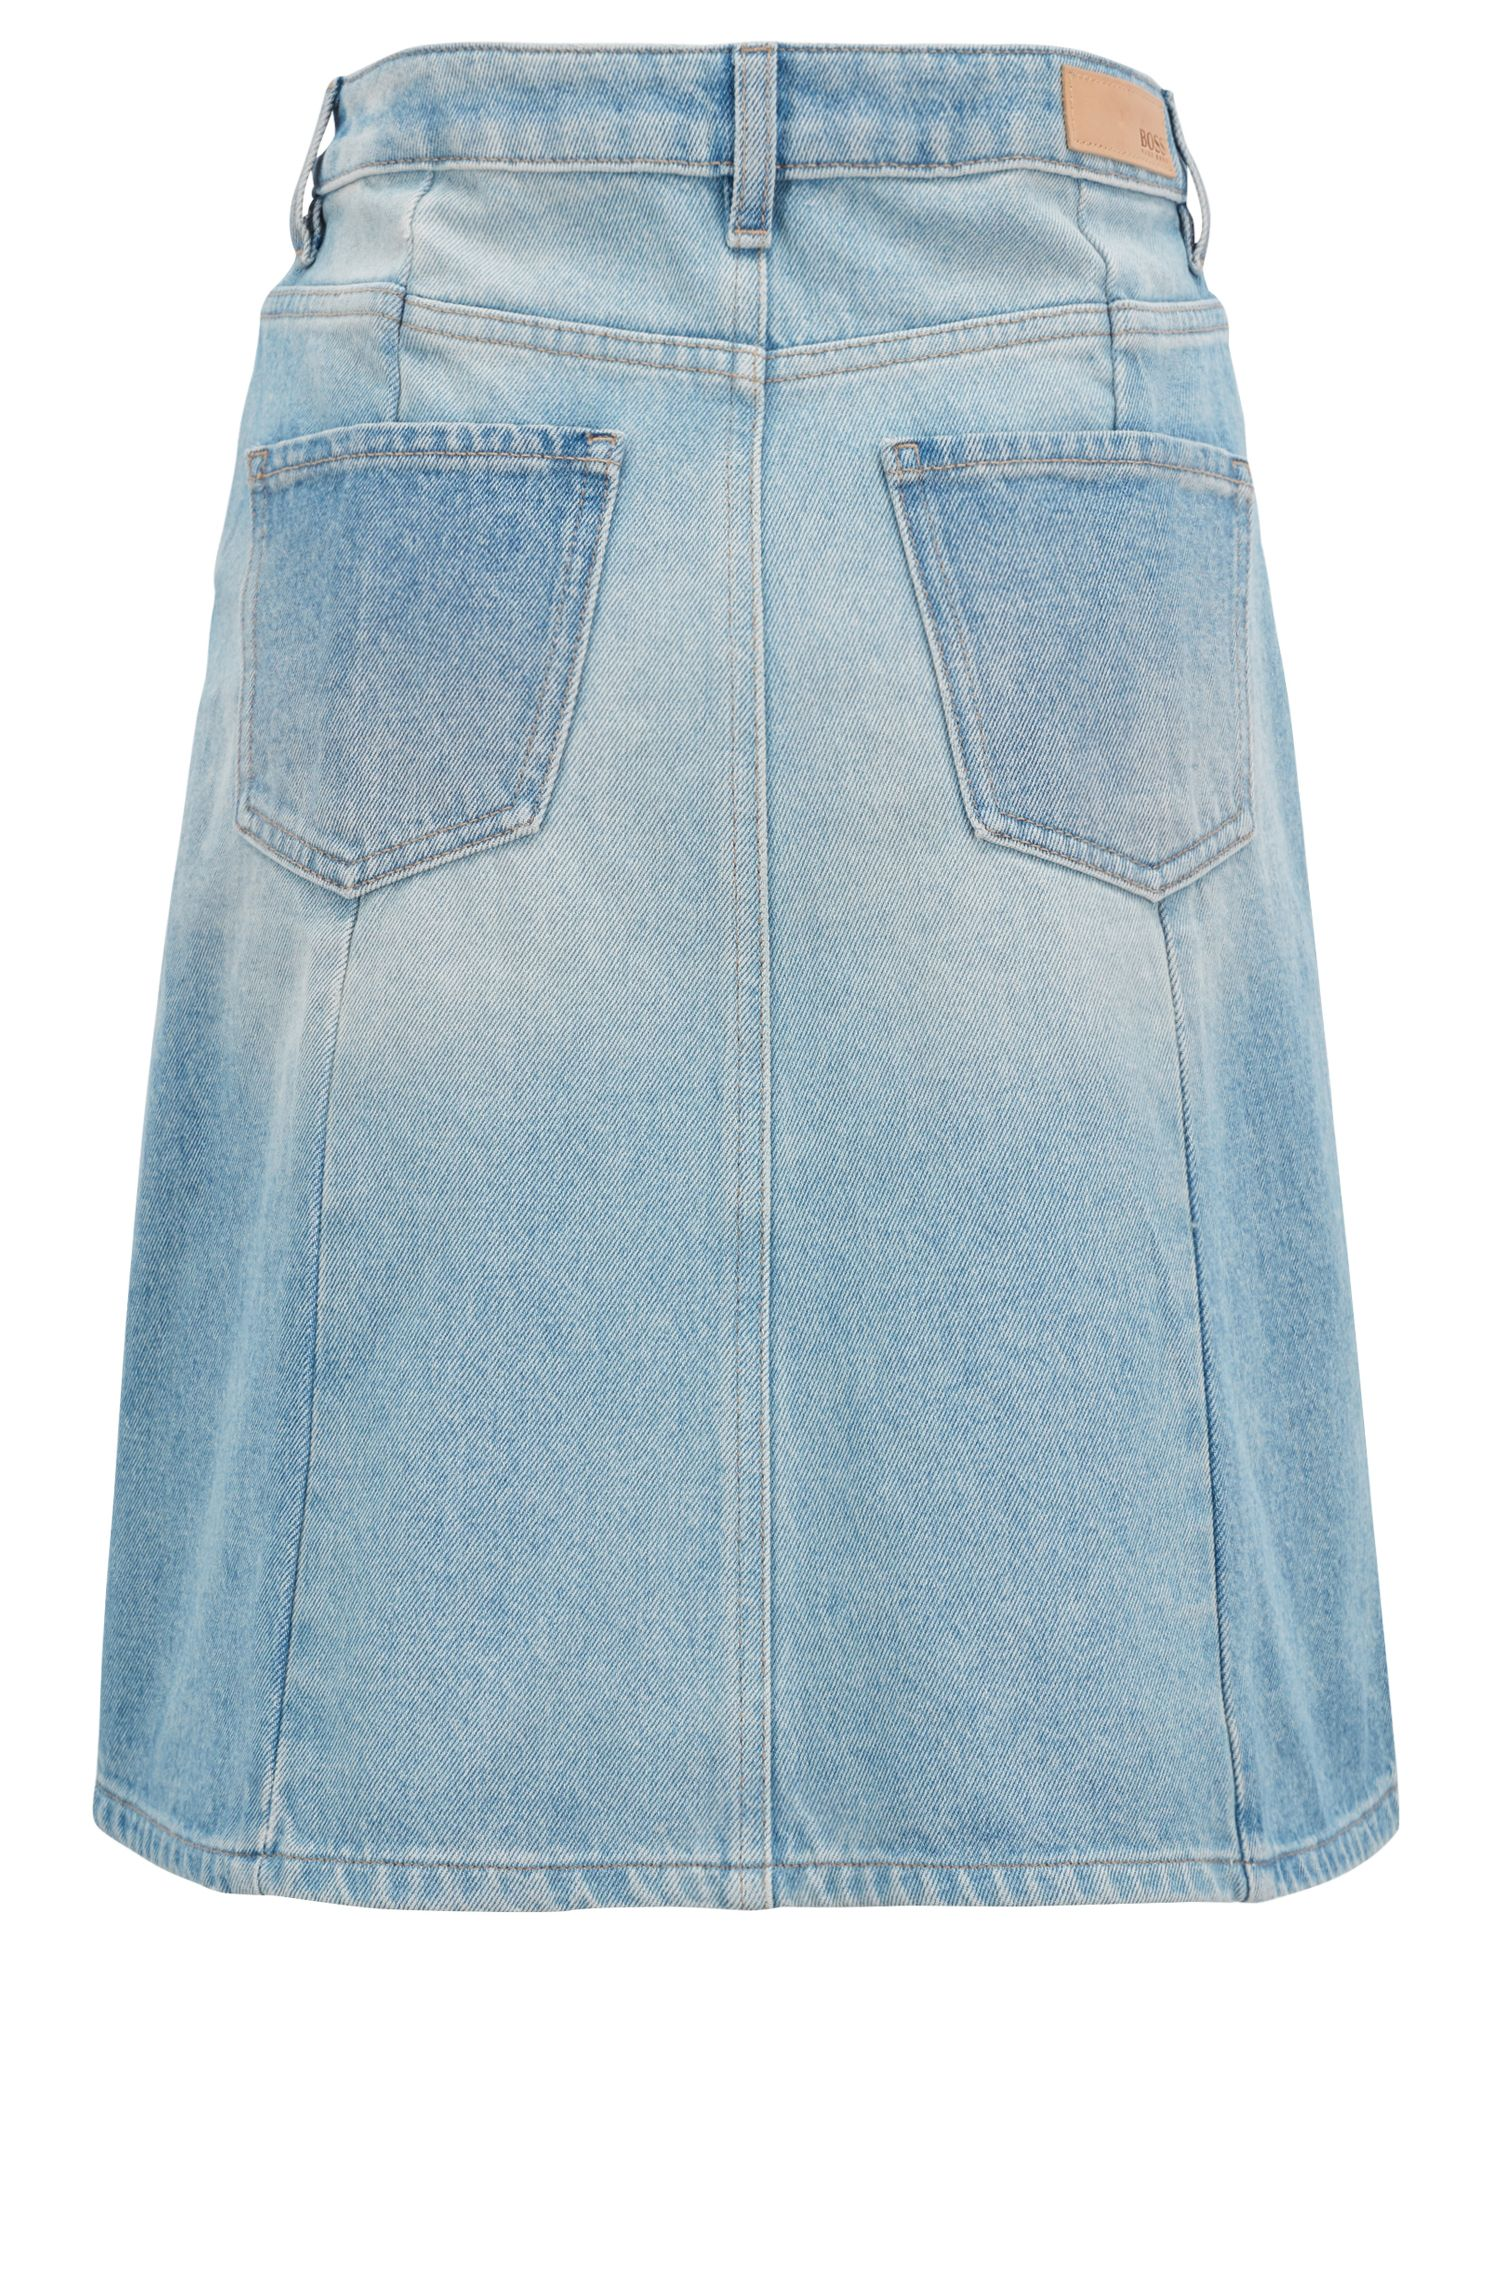 A-line skirt in heavyweight distressed denim